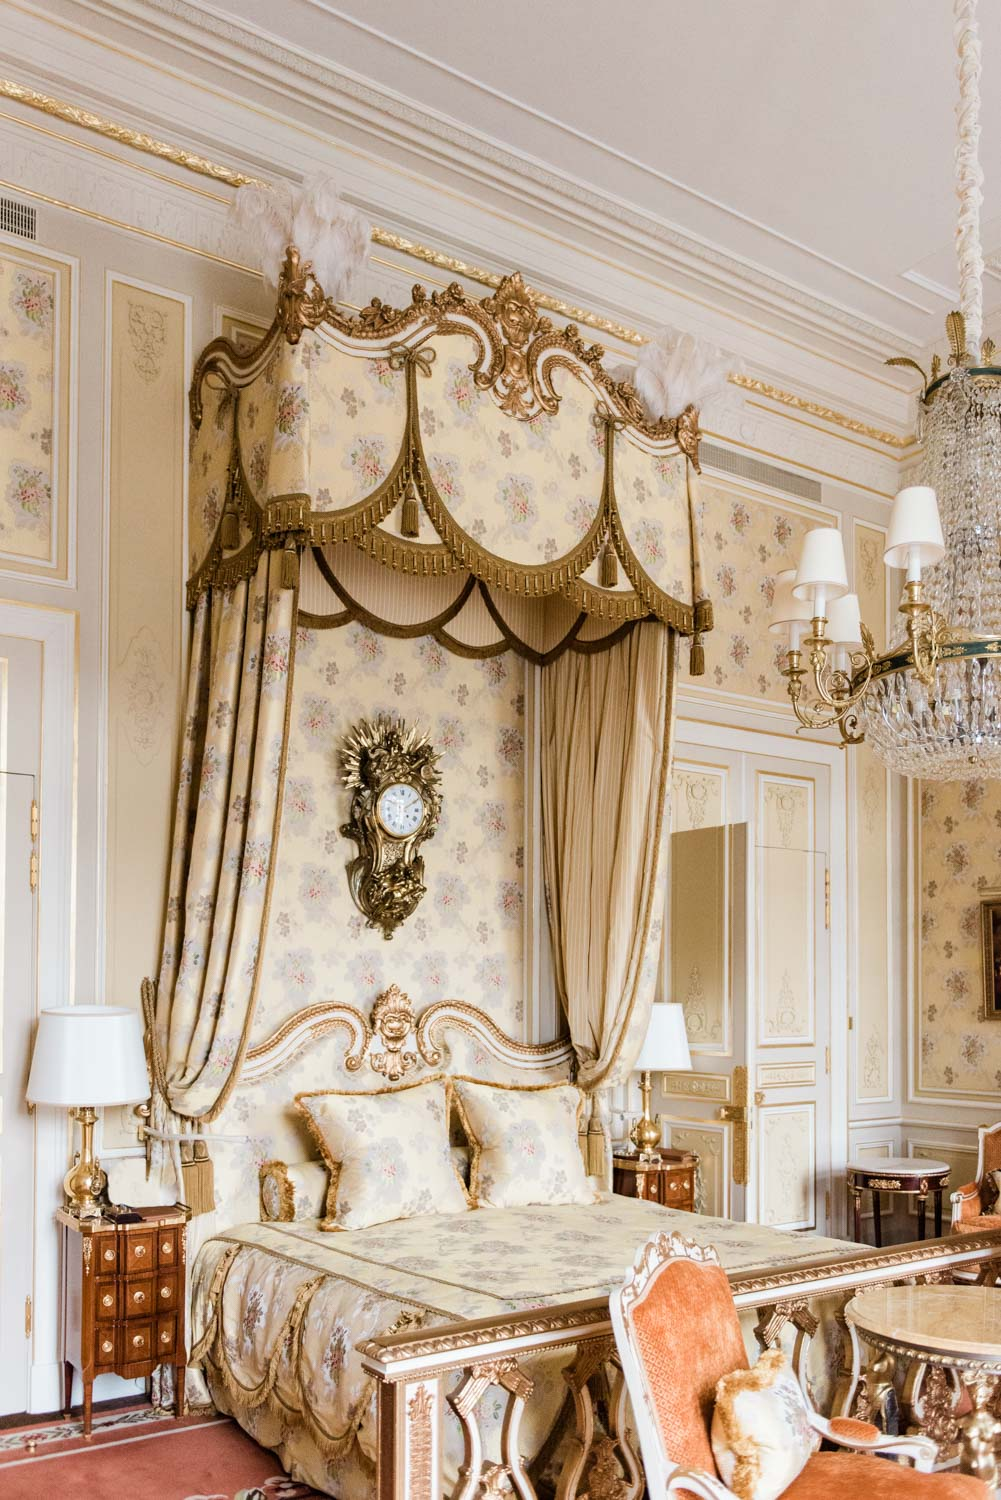 The Suite Imperial in The Ritz Hotel in Paris, a replica of Marie Antoinette's suite at Versailles